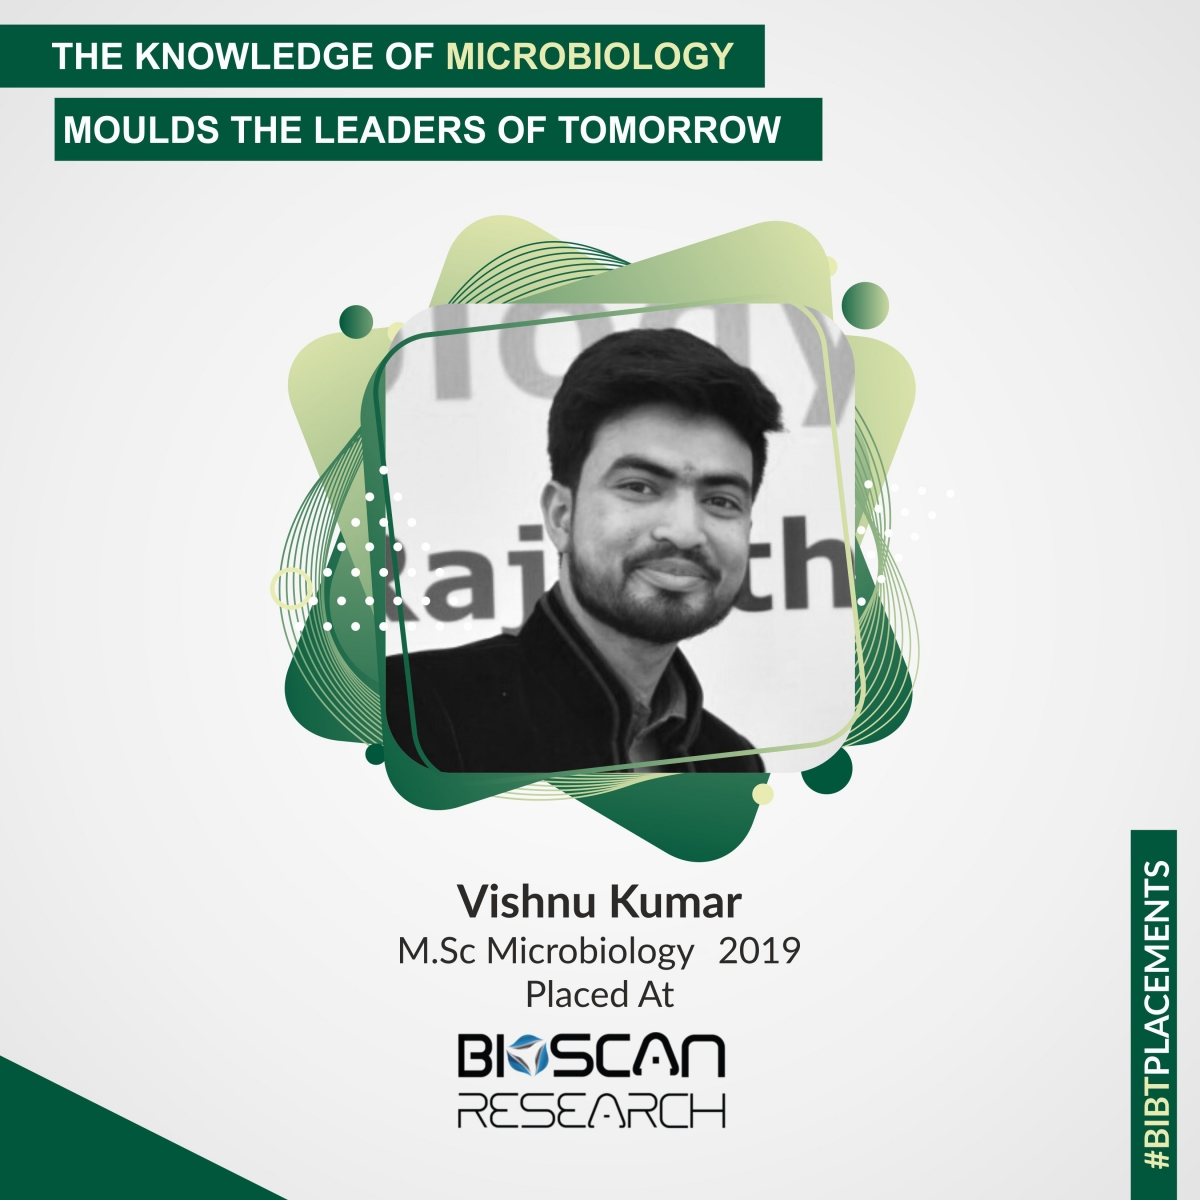 Vishnu Kumar, M.Sc. Microbiology 2019 | #BIBTPlacements